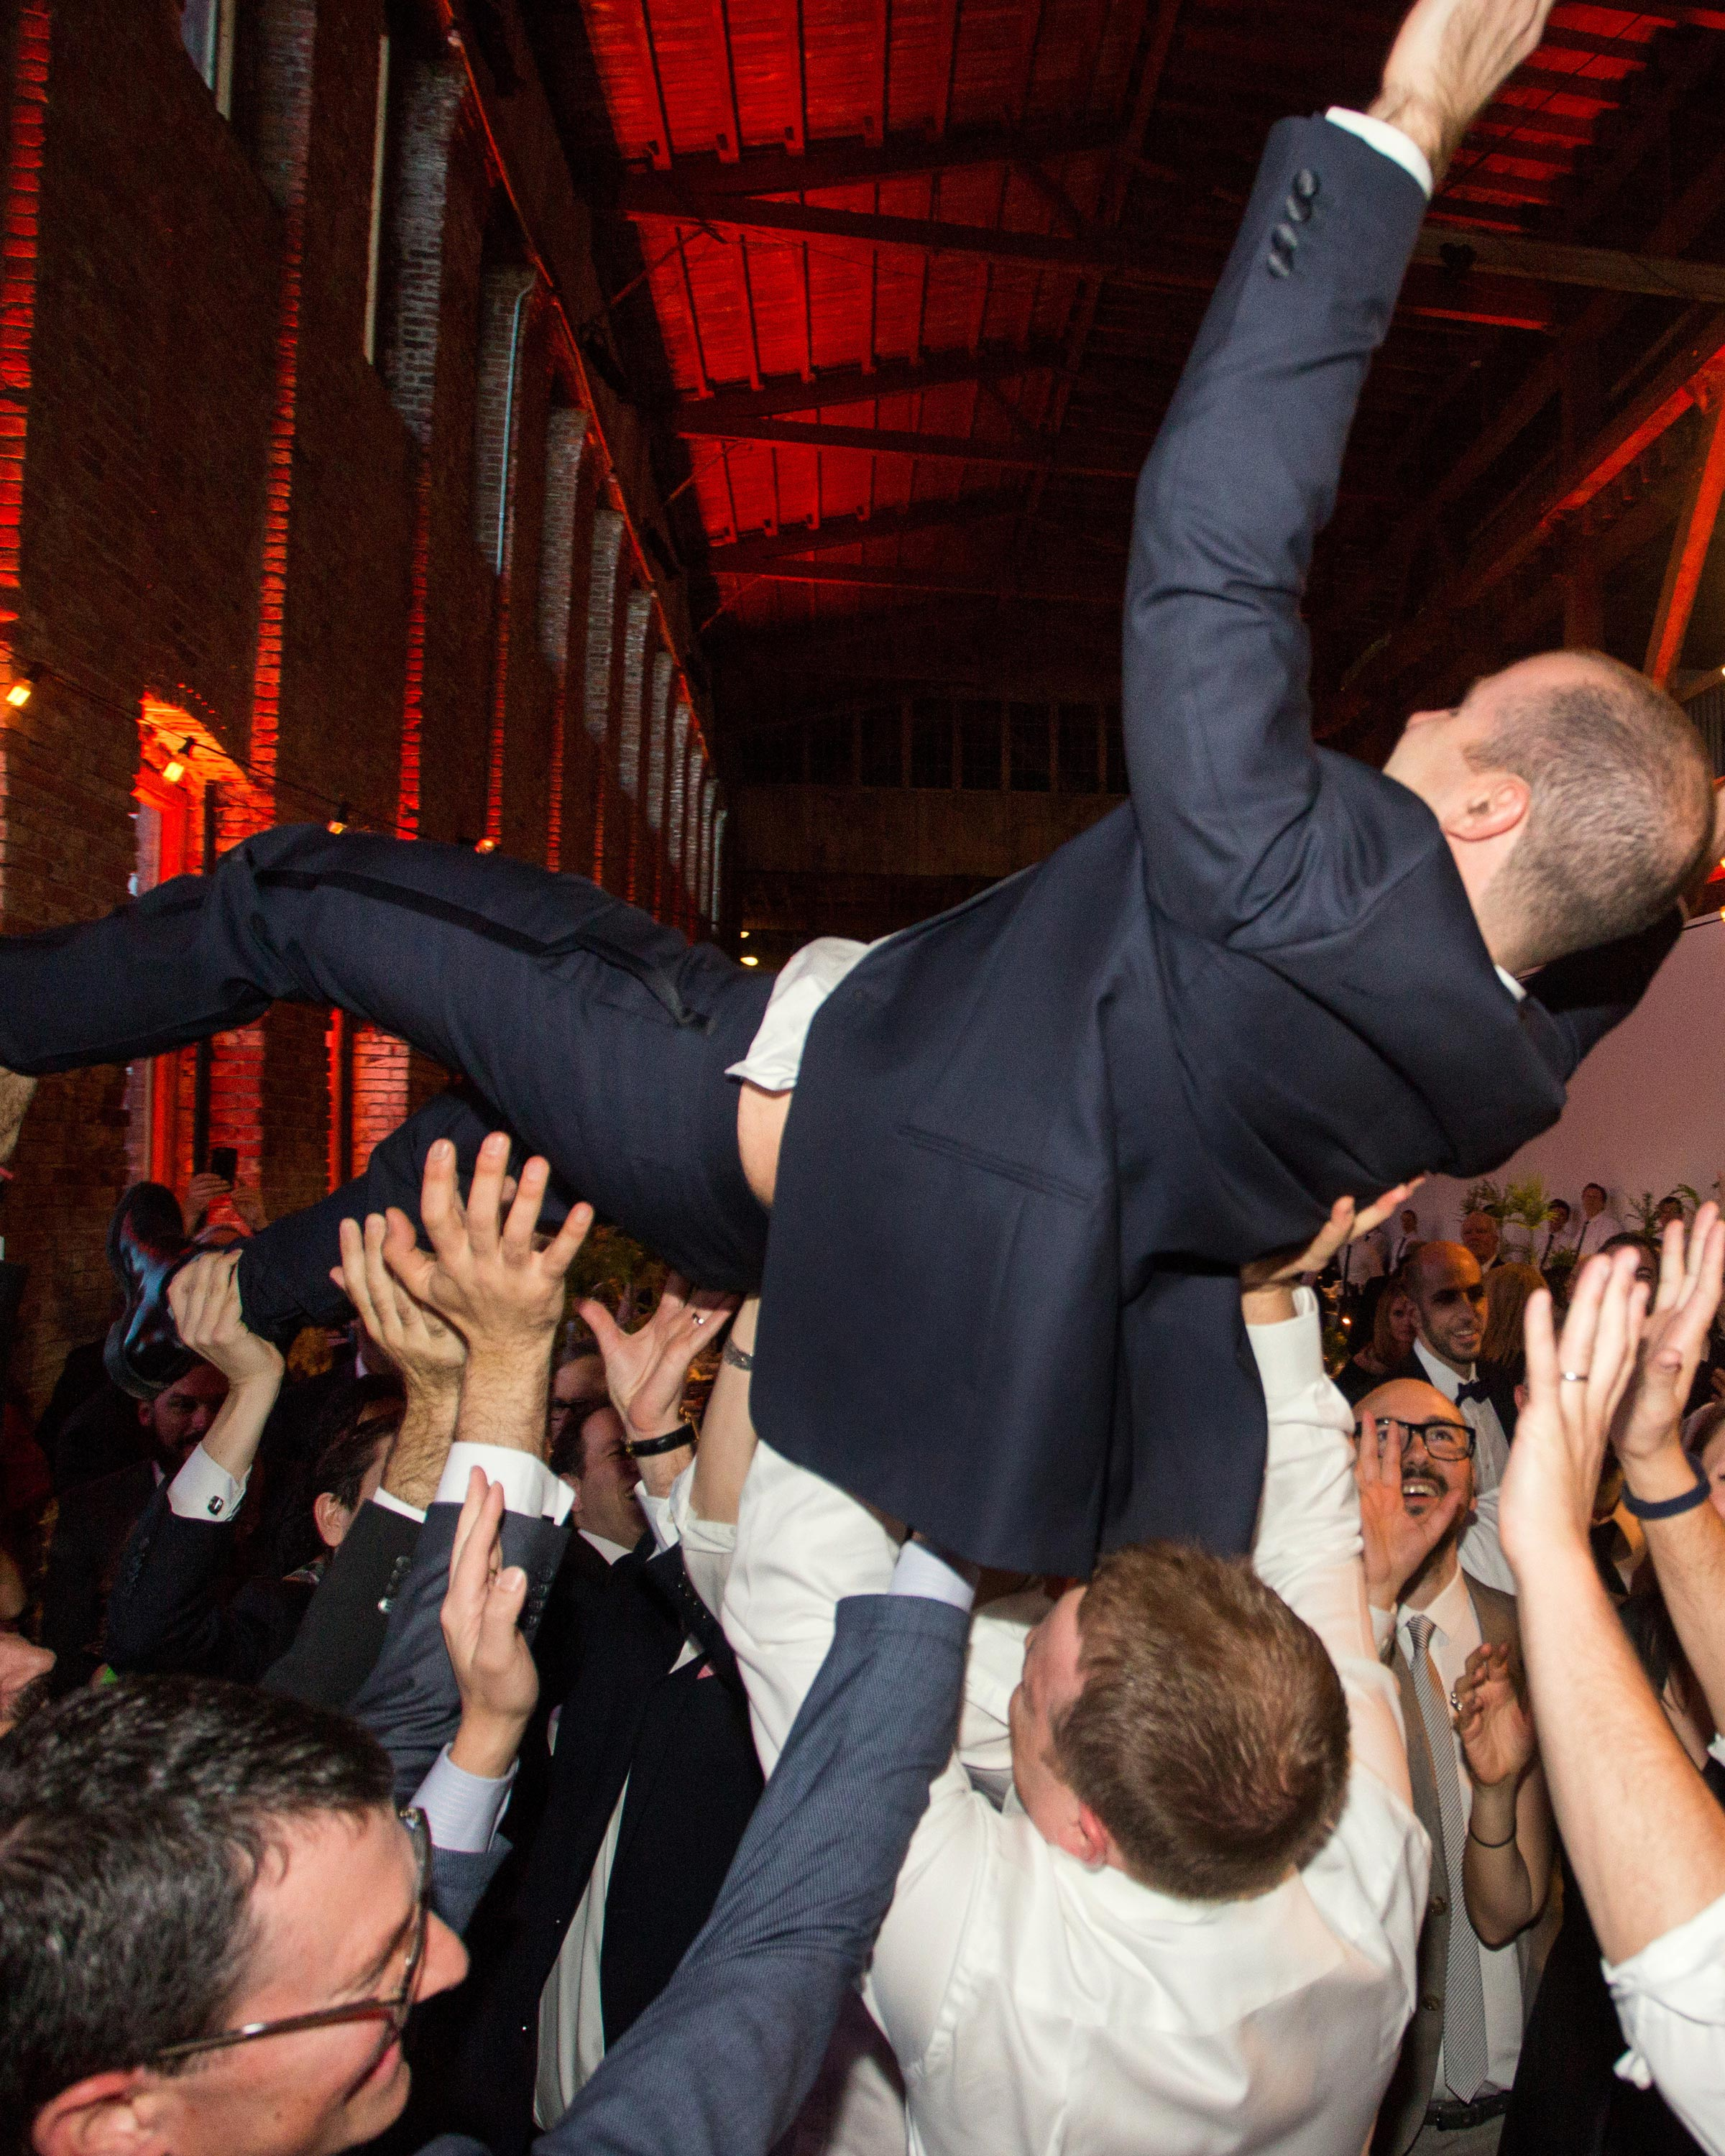 emily-josh-wedding-crowdsurf-0192-s112719-0216.jpg